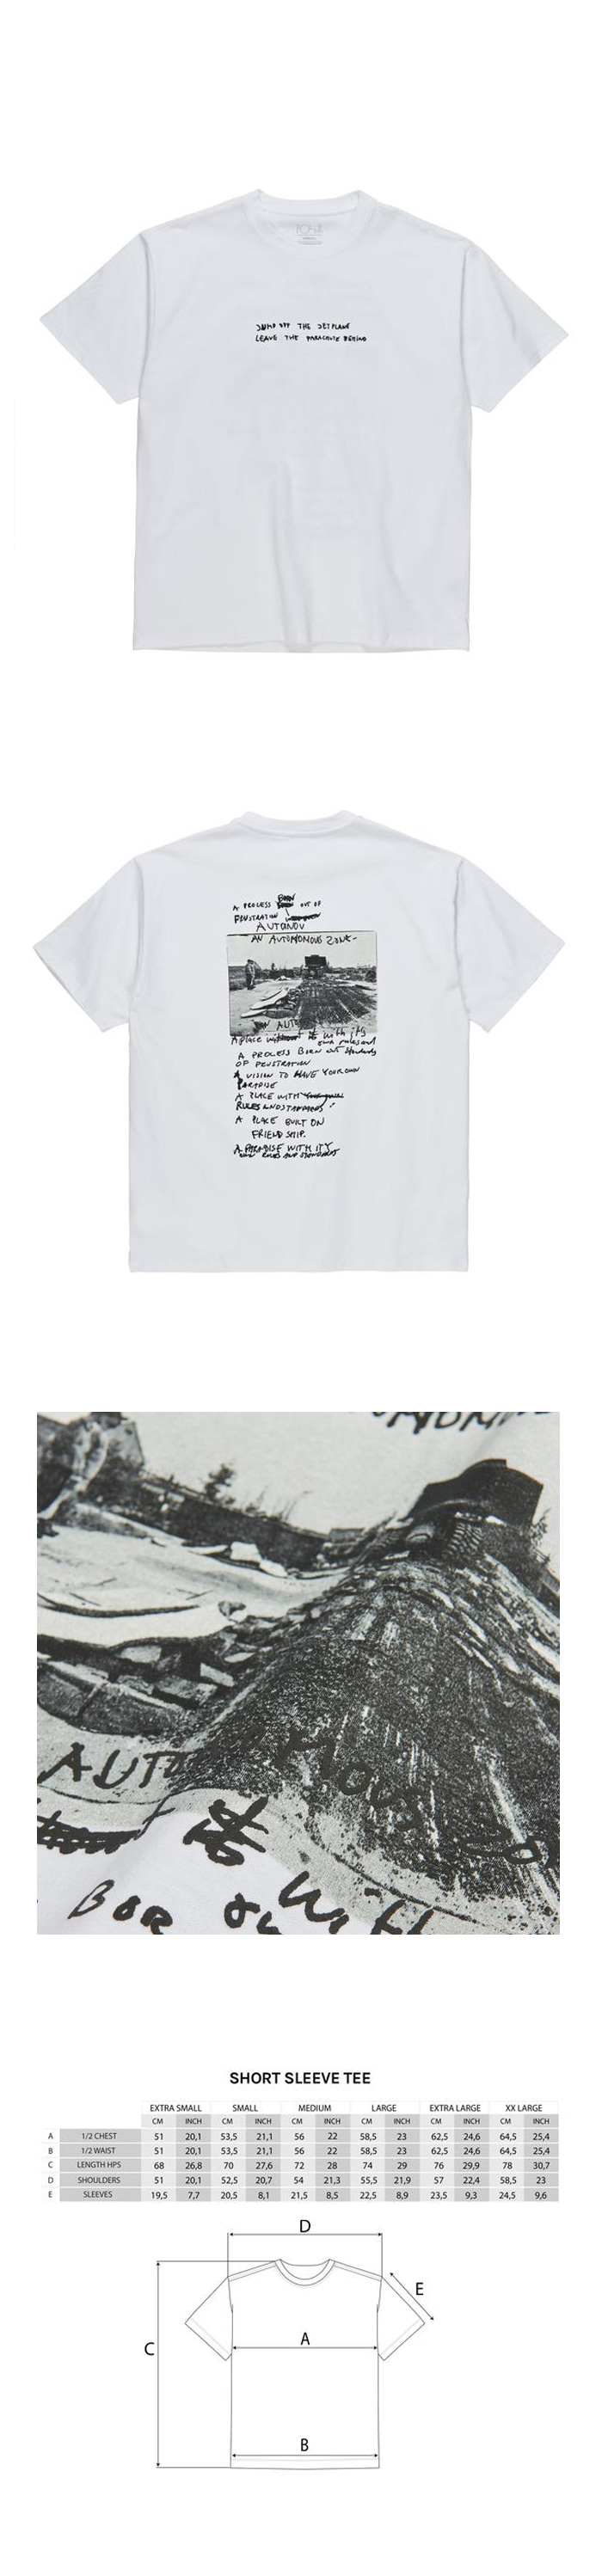 폴라(POLAR) Strongest Notes Tee - White